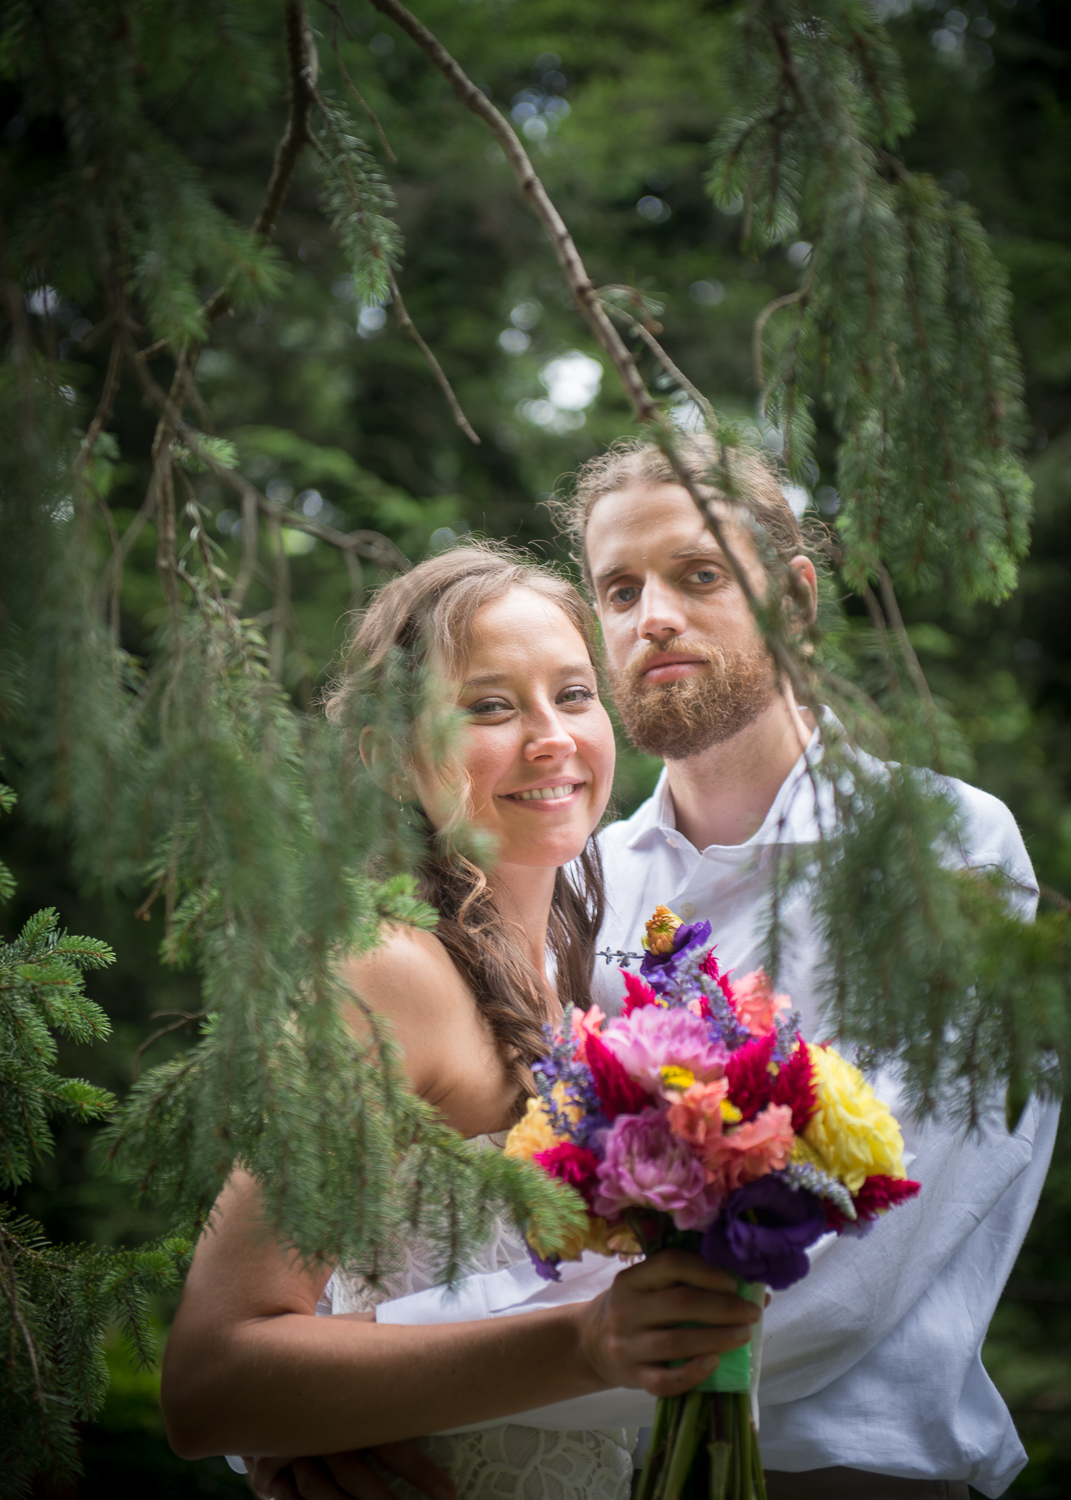 Ada and Aaron are journalists and conscientious world travelers. They were both born with initials AJK. On July 10th,they were married.